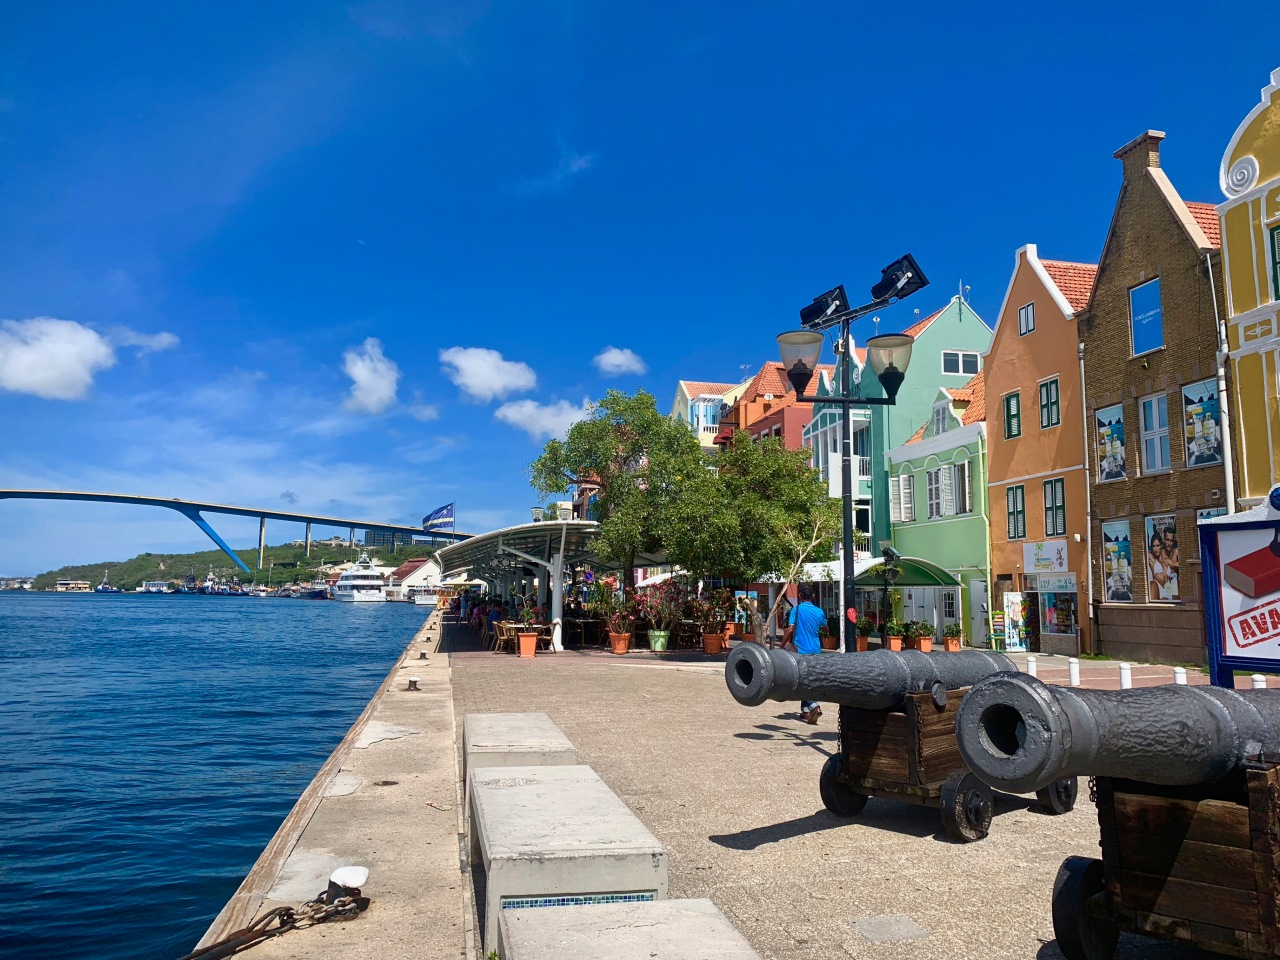 Golden bridge and canons in Punda Curacao